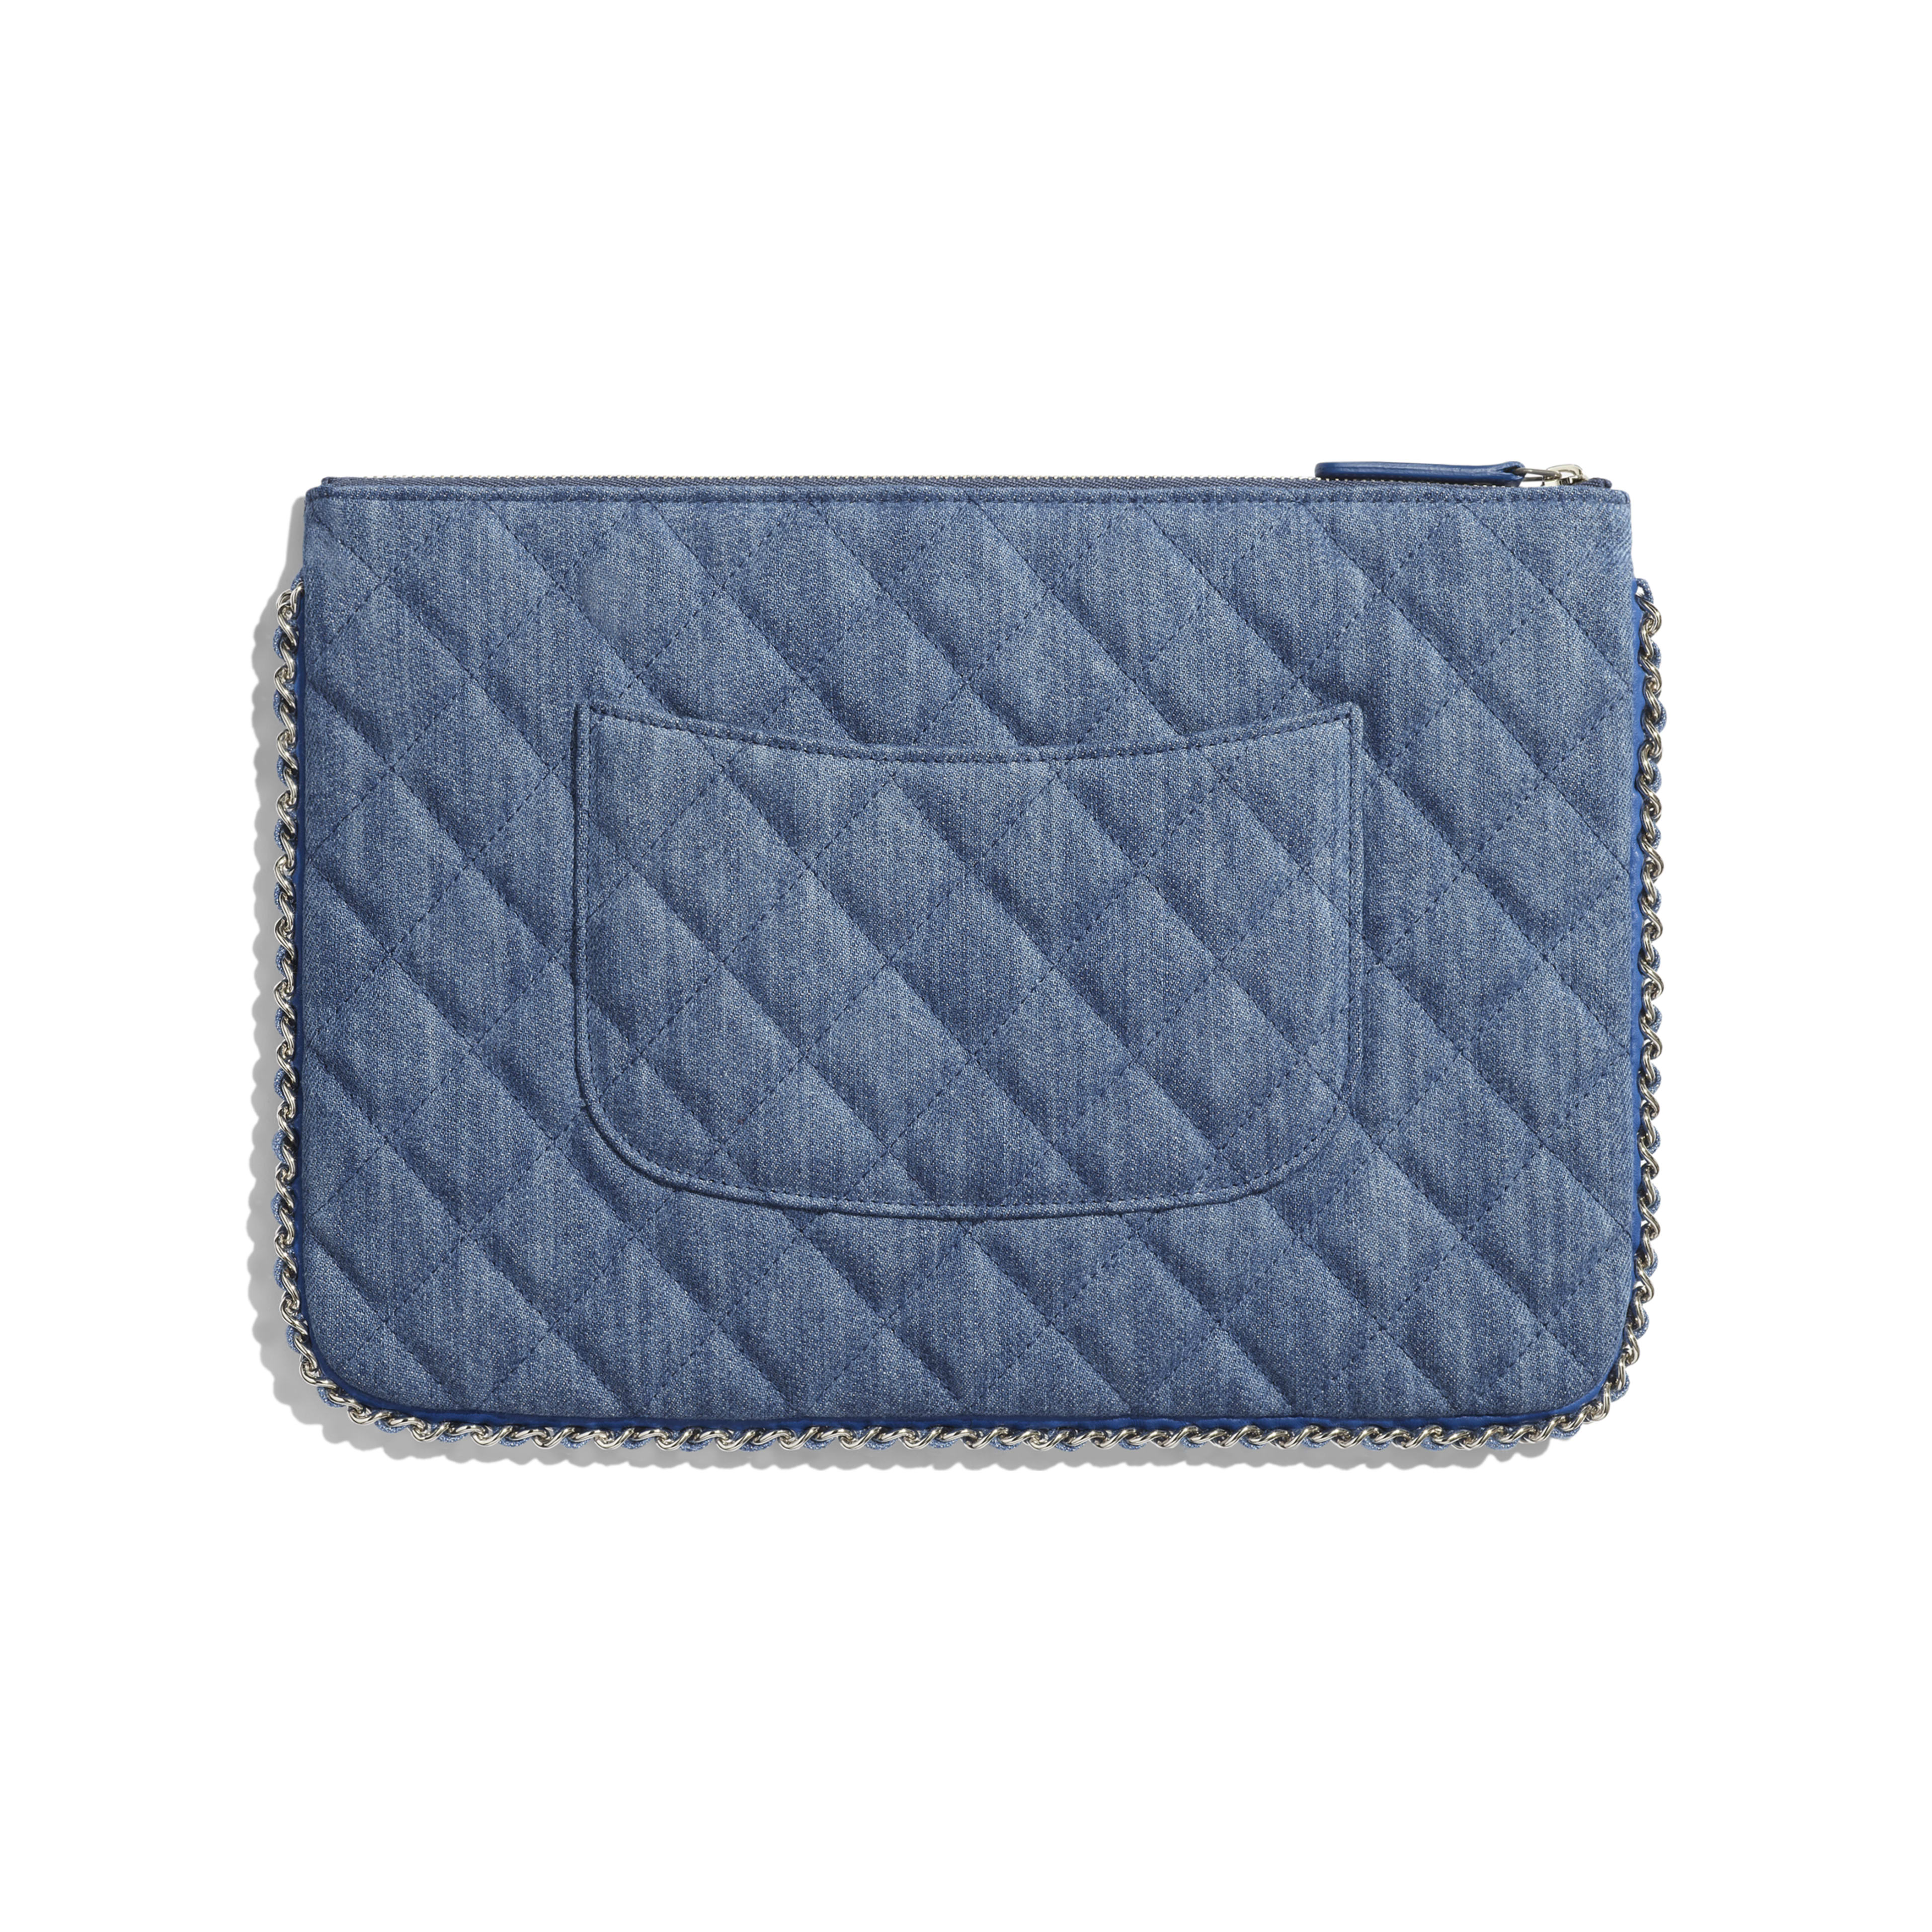 Pouch - Blue - Denim, Chain & Silver-Tone Metal - Alternative view - see full sized version